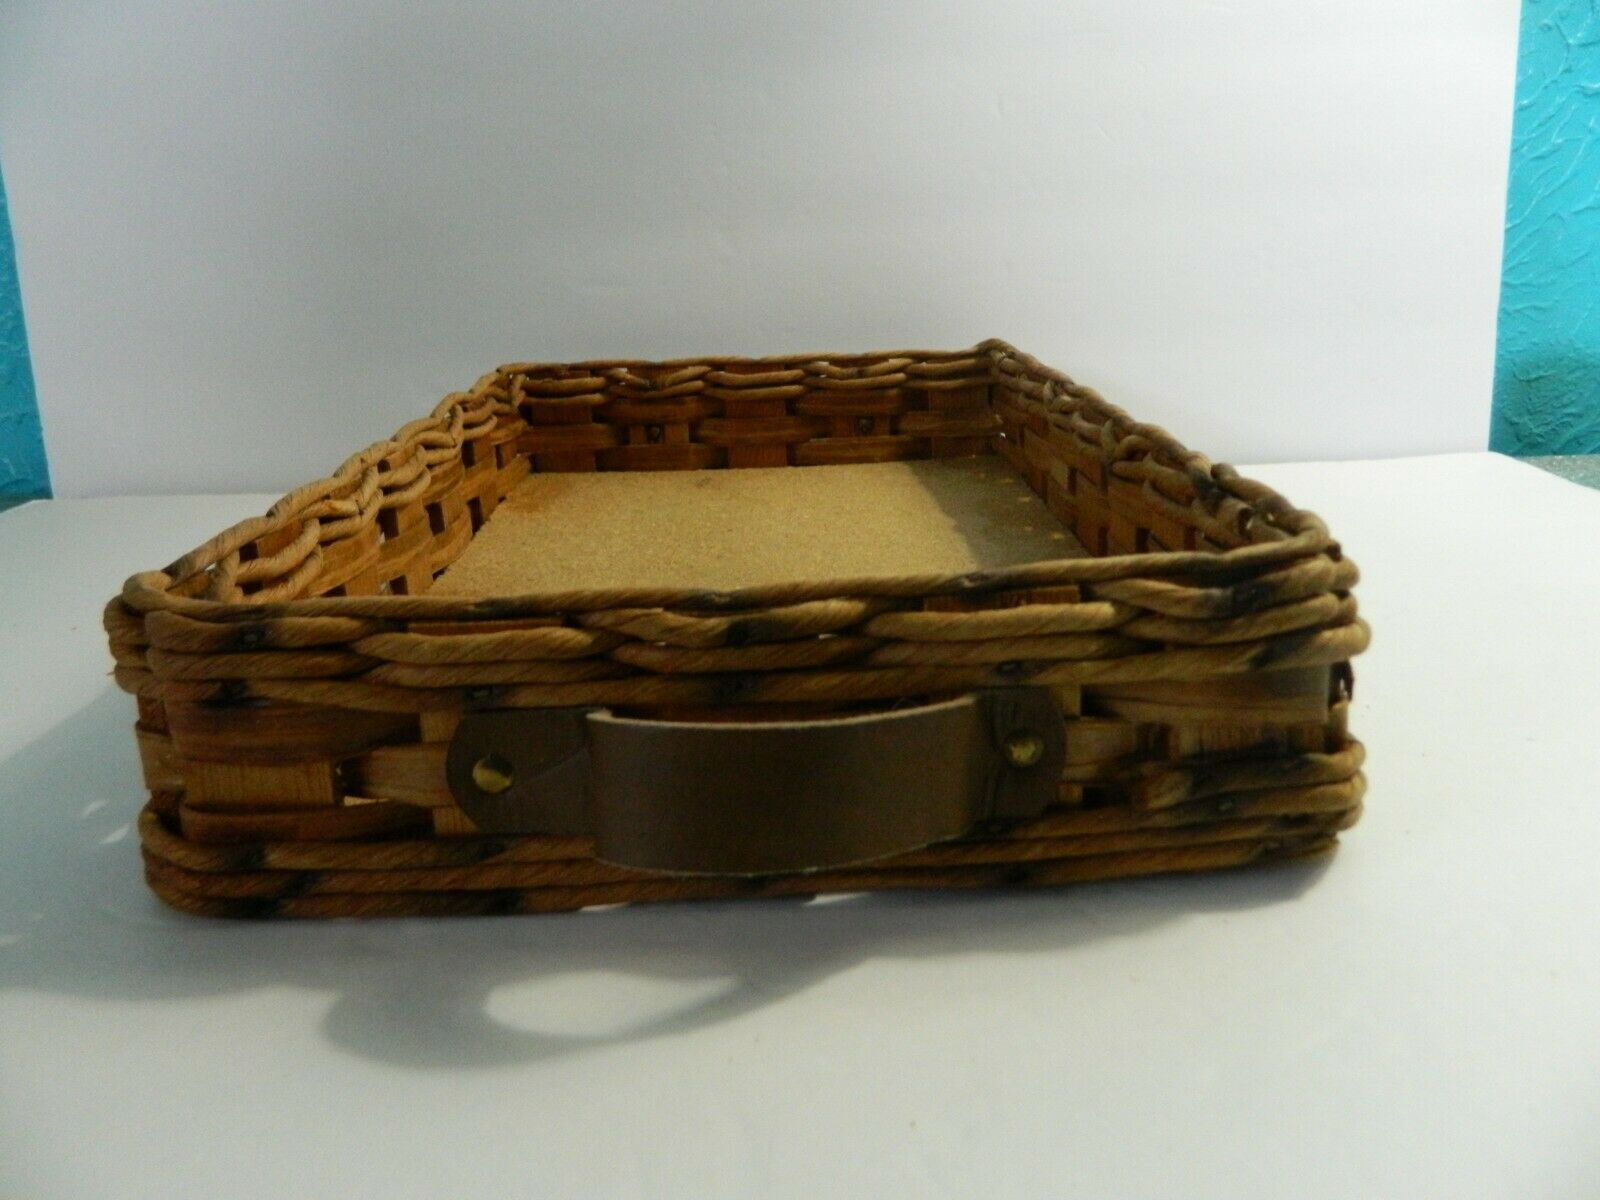 Vintage Pyrex Wicker Wood Long Casserole Dish Holder Cradle Fits 232 image 3